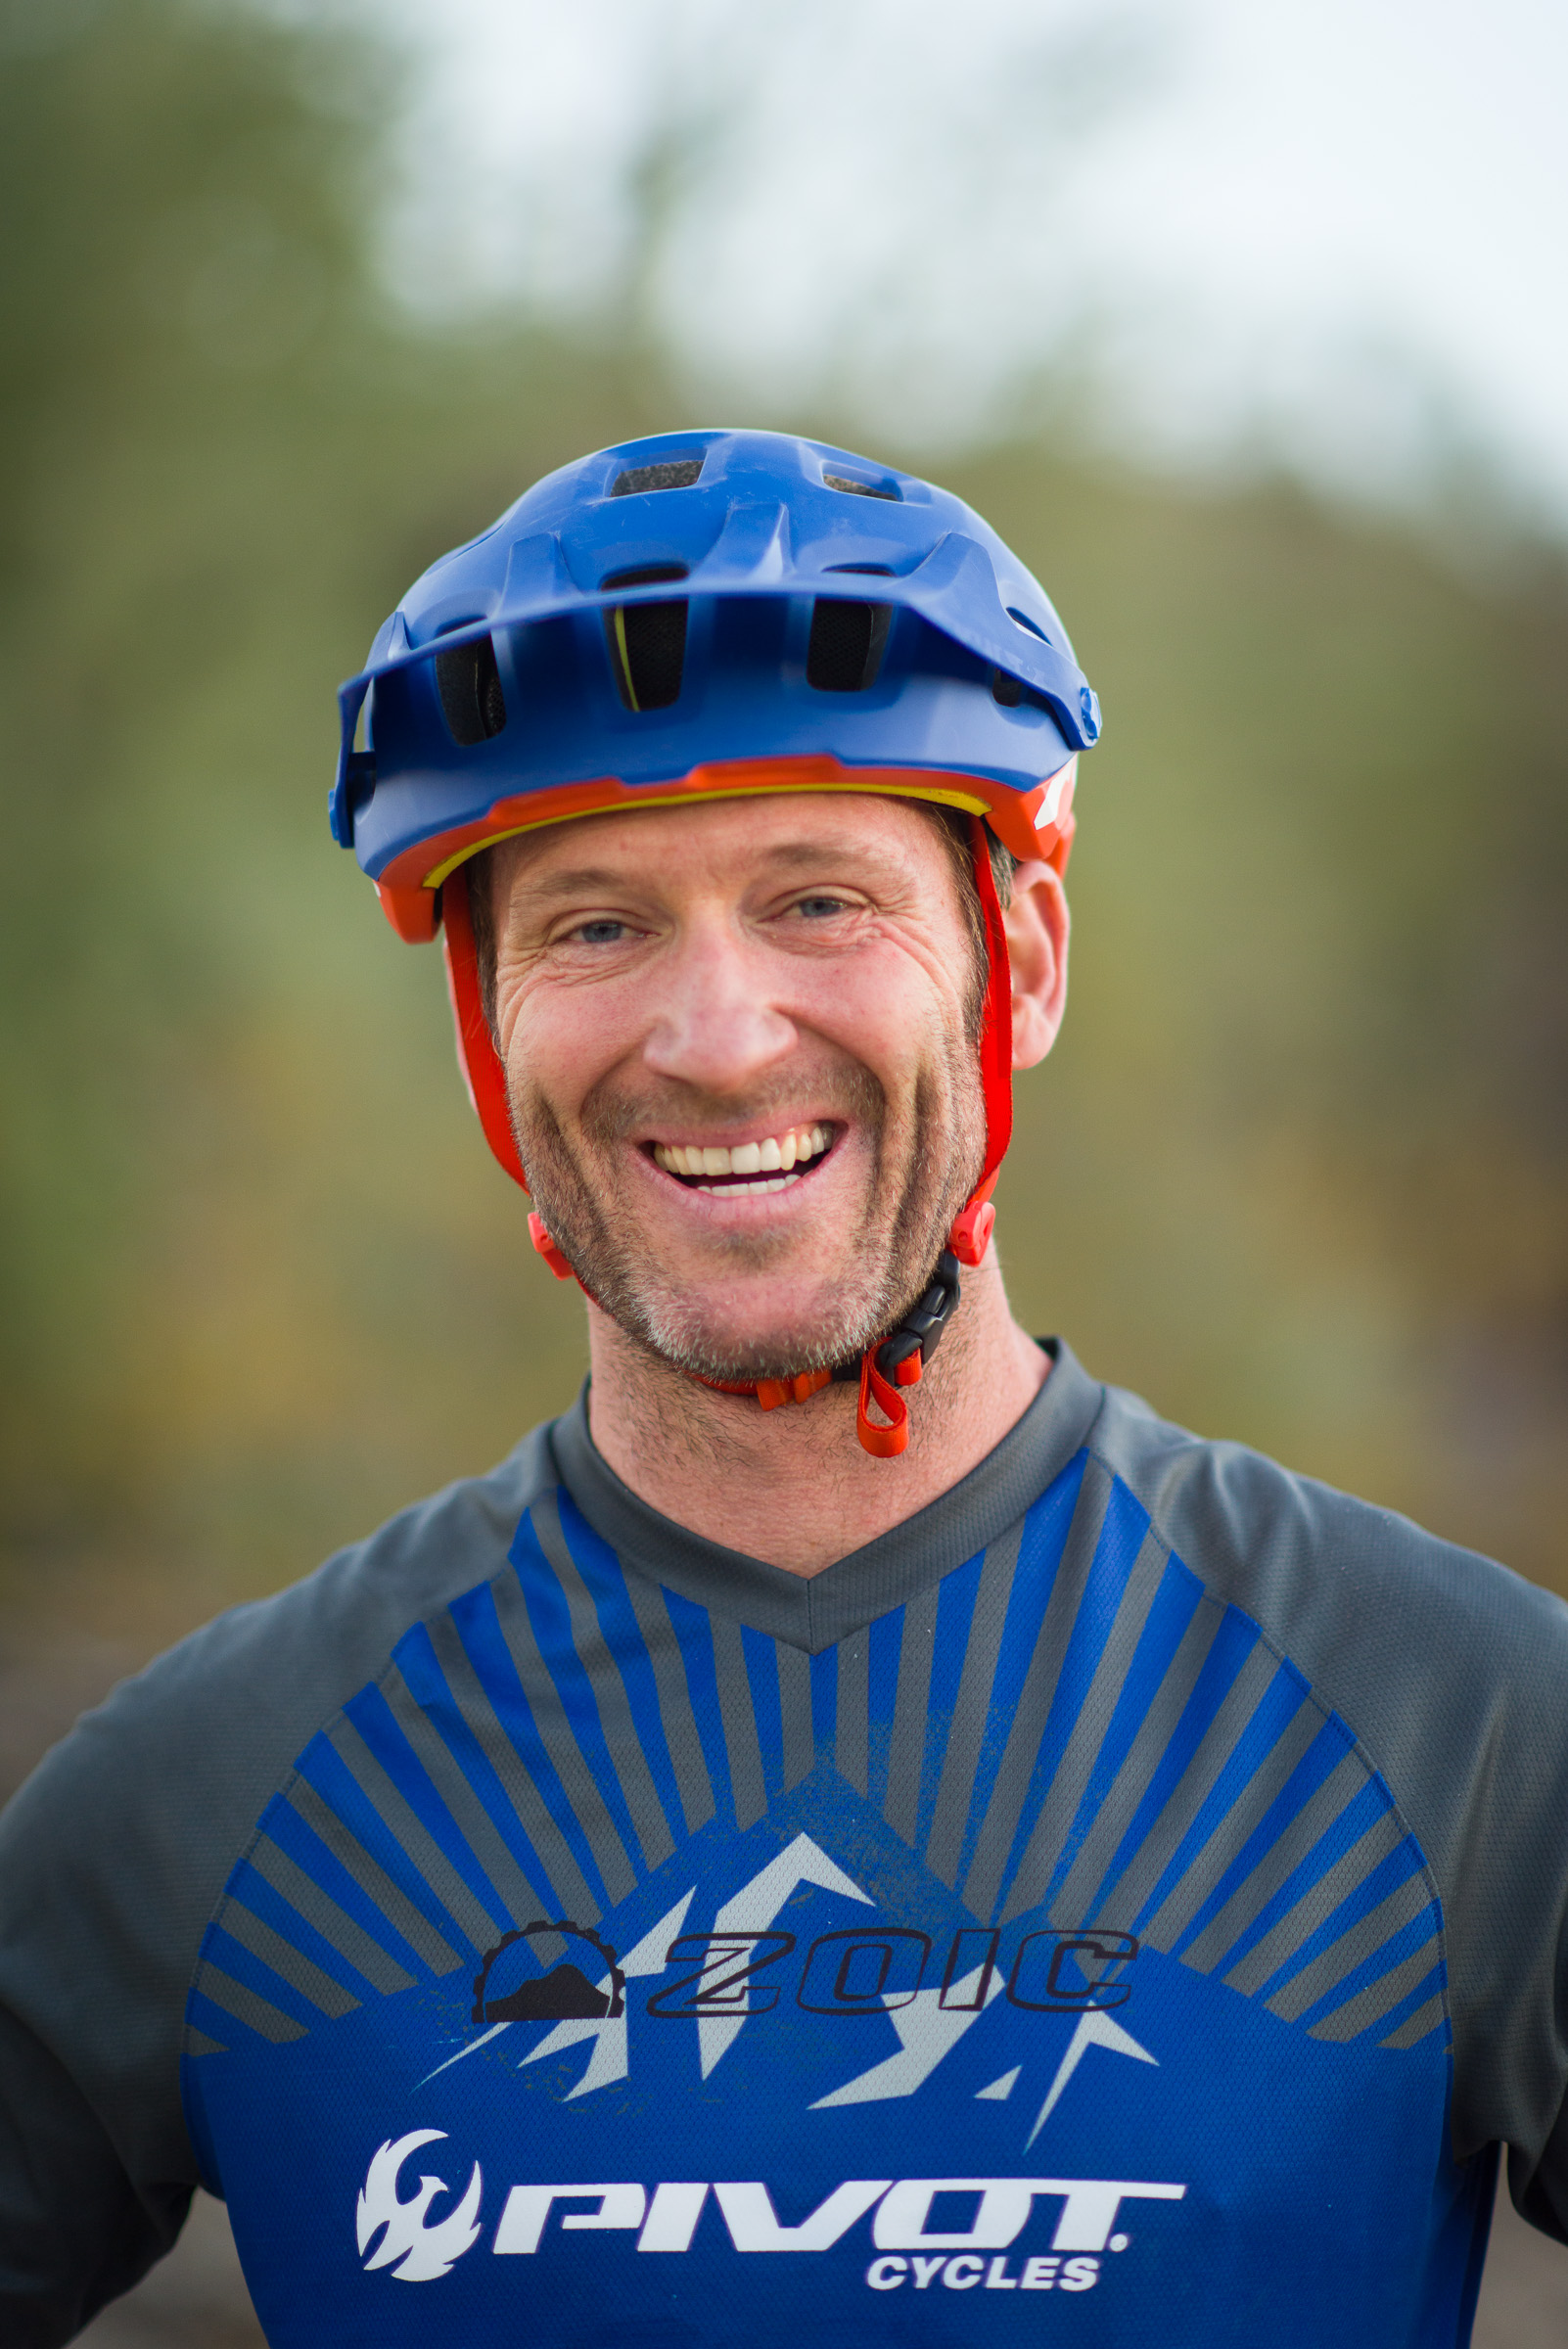 Richard Drew, Professional Mountain Bike Rider and Lead Instructor.